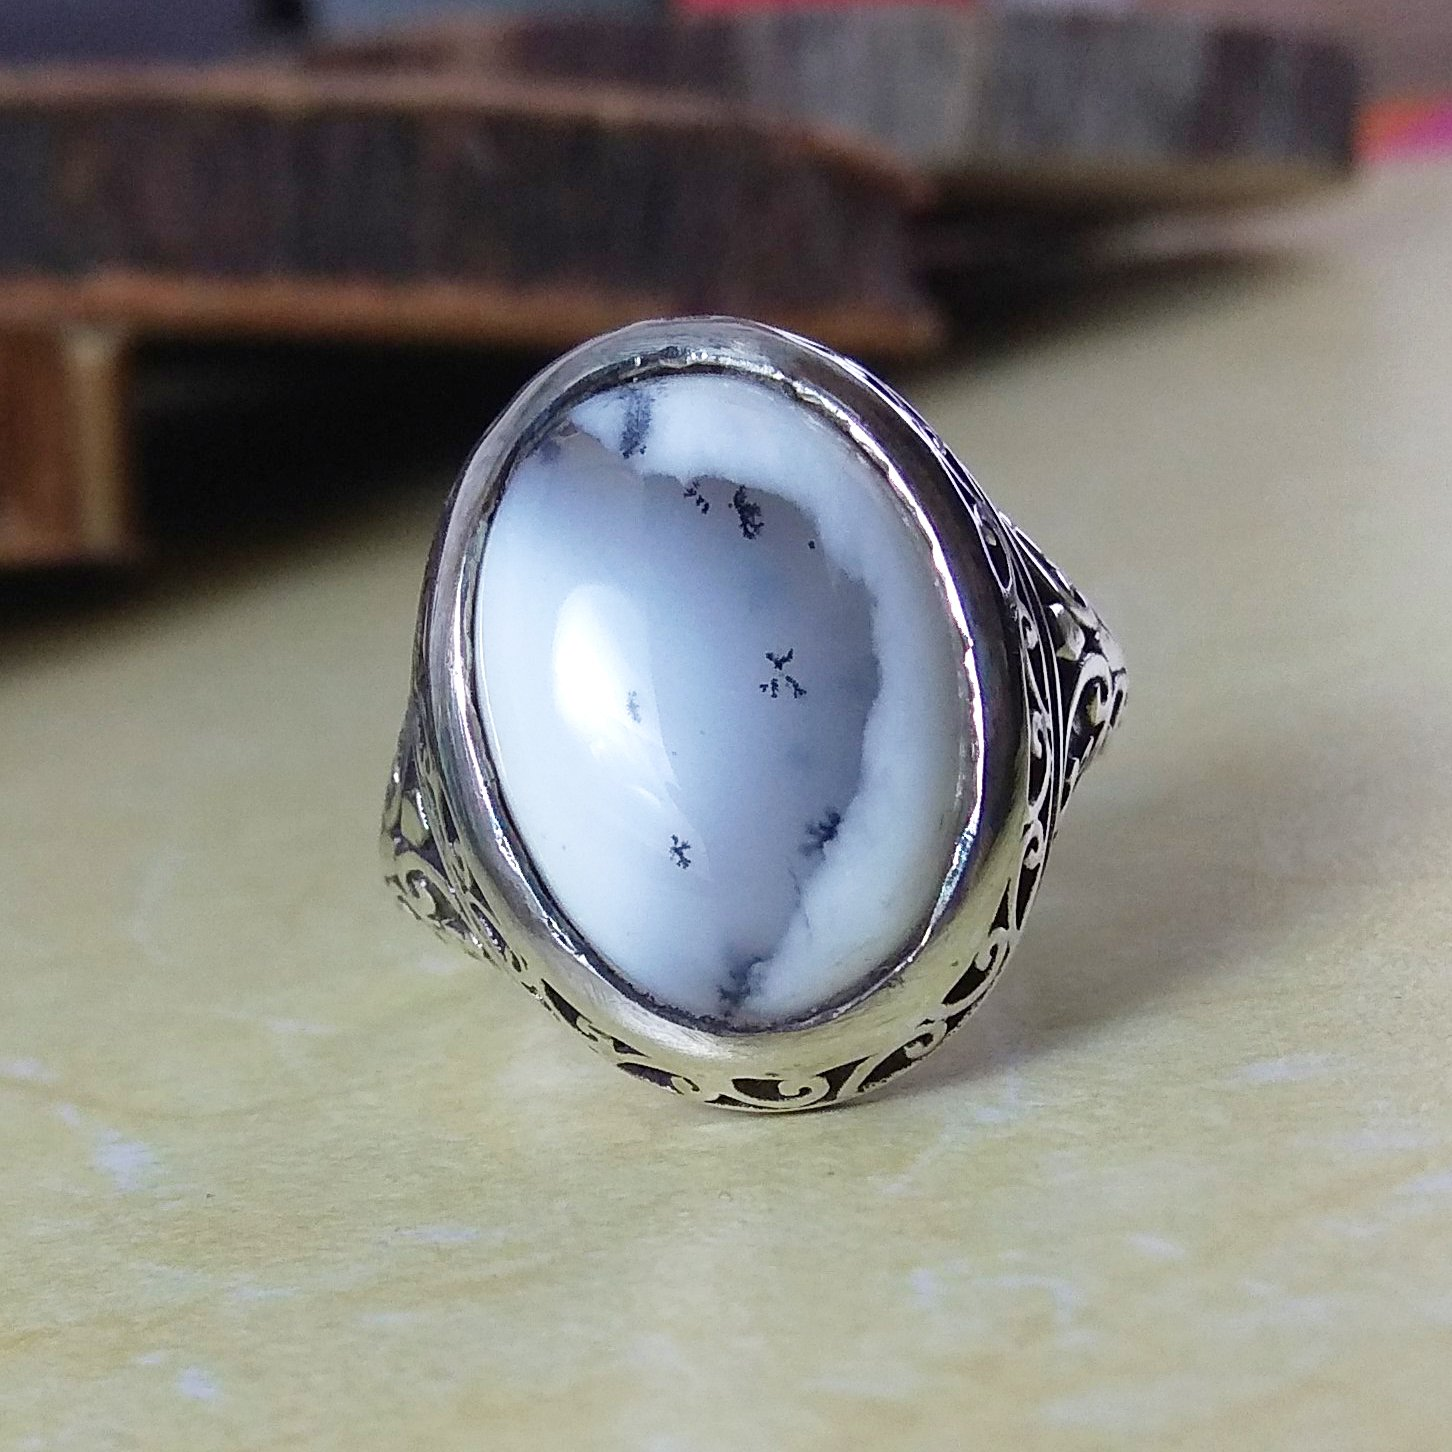 Oval Gemstone Christmas Sale 925 Silver Ring Wide Band Ring Dendritic Opal Ring Women/'s Jewelry Silver Opal  Ring Statement Ring